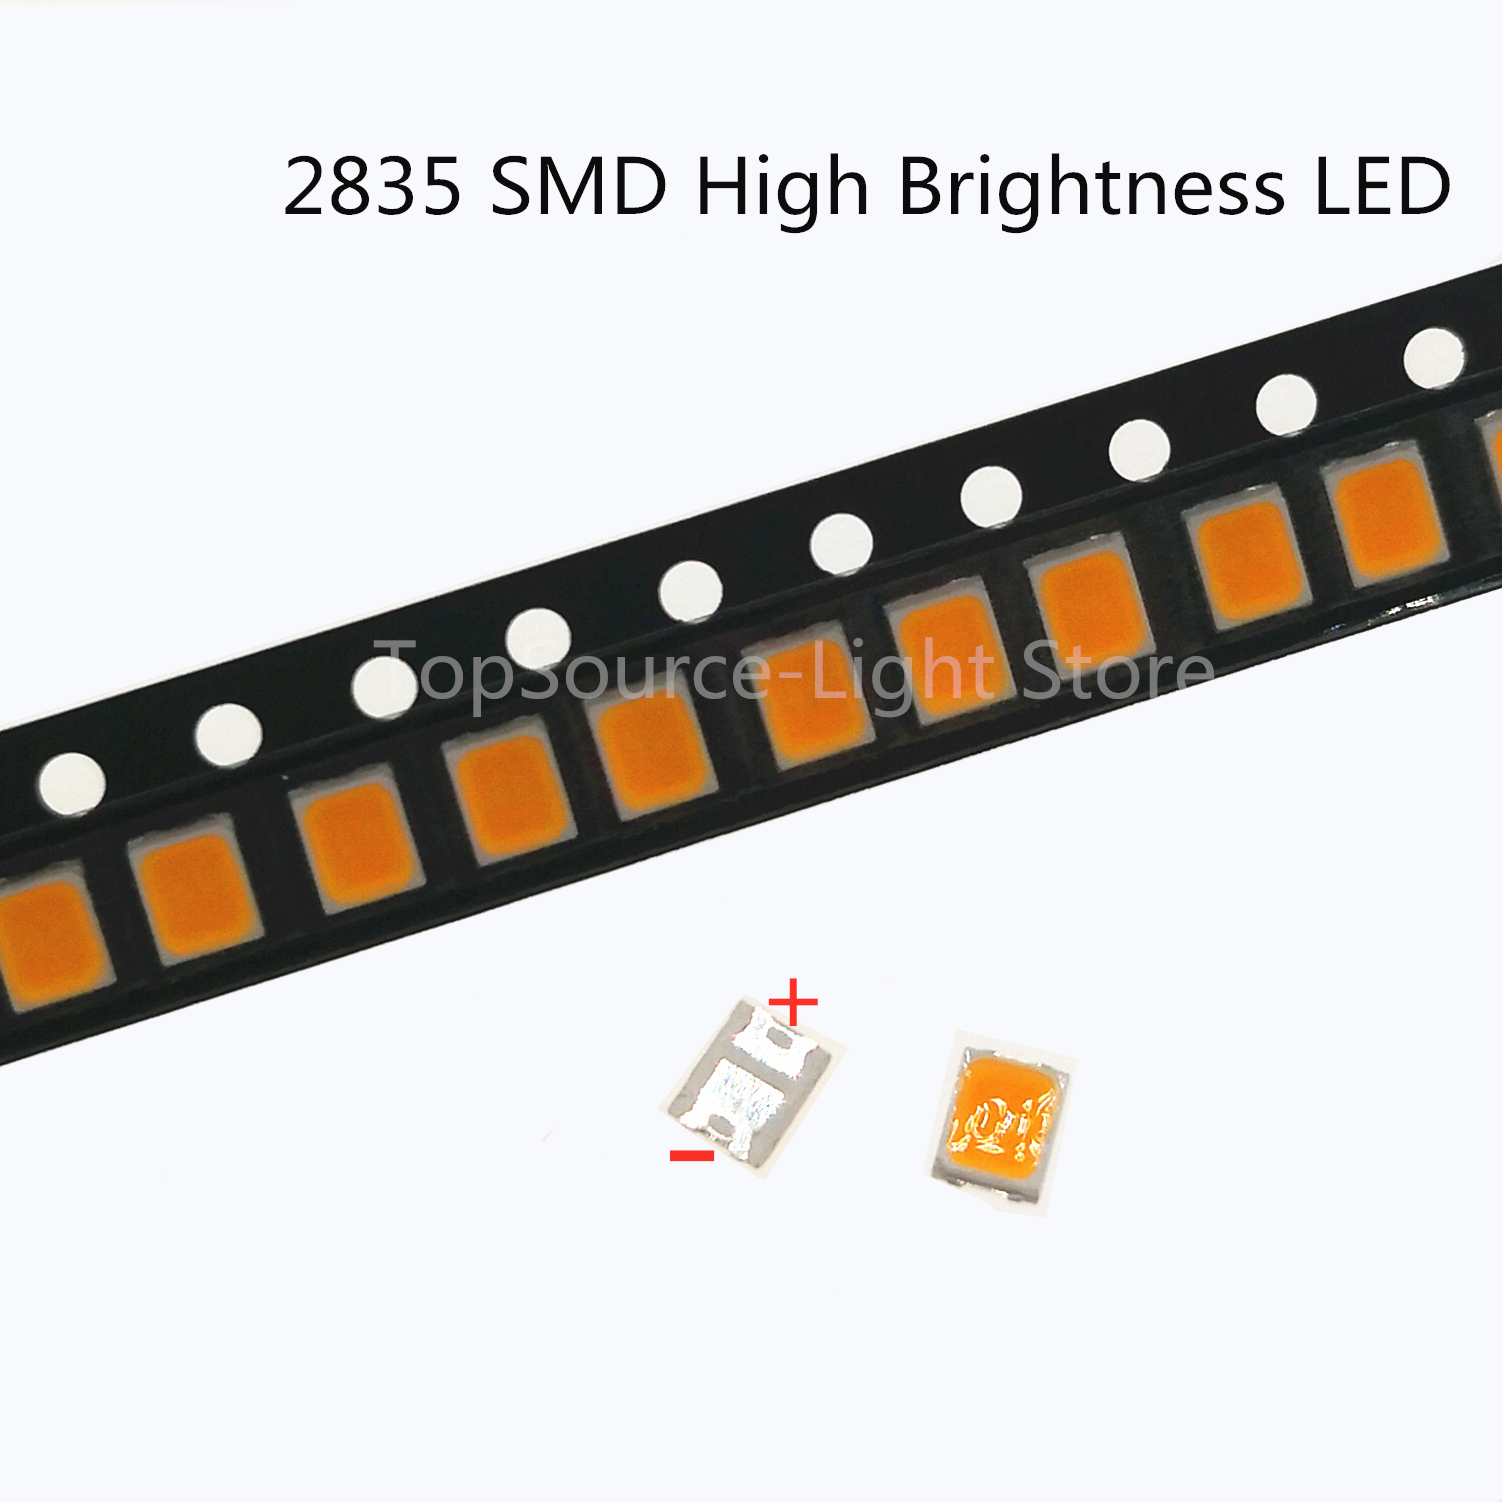 50Pcs High Brightness 2835 SMD LED Chip 1W 18V  9V 6V 3V 36V Warm Nature Cold White LED 3000K-9500K Light Emitting Diode Lamp